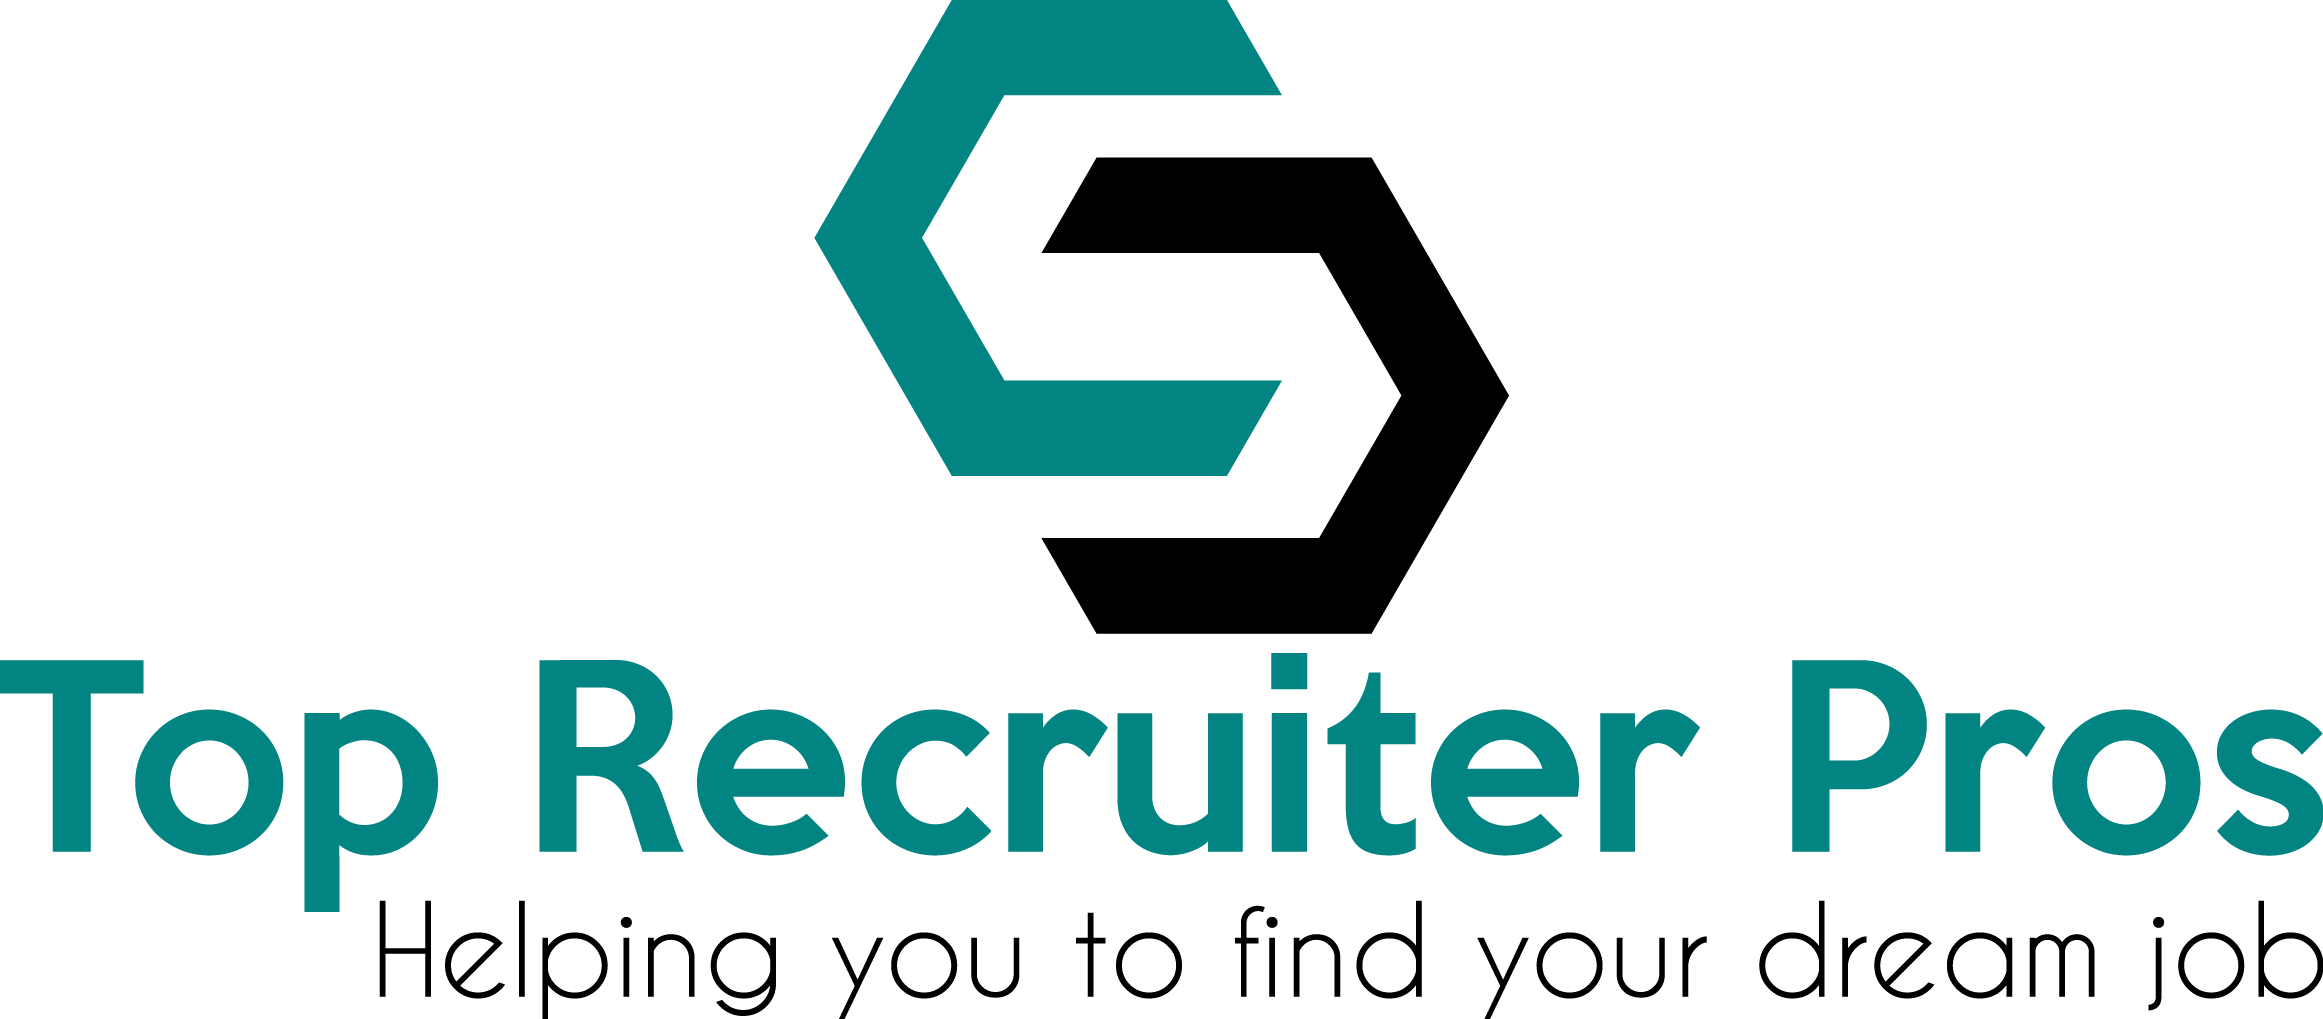 Top Recruiter Pros